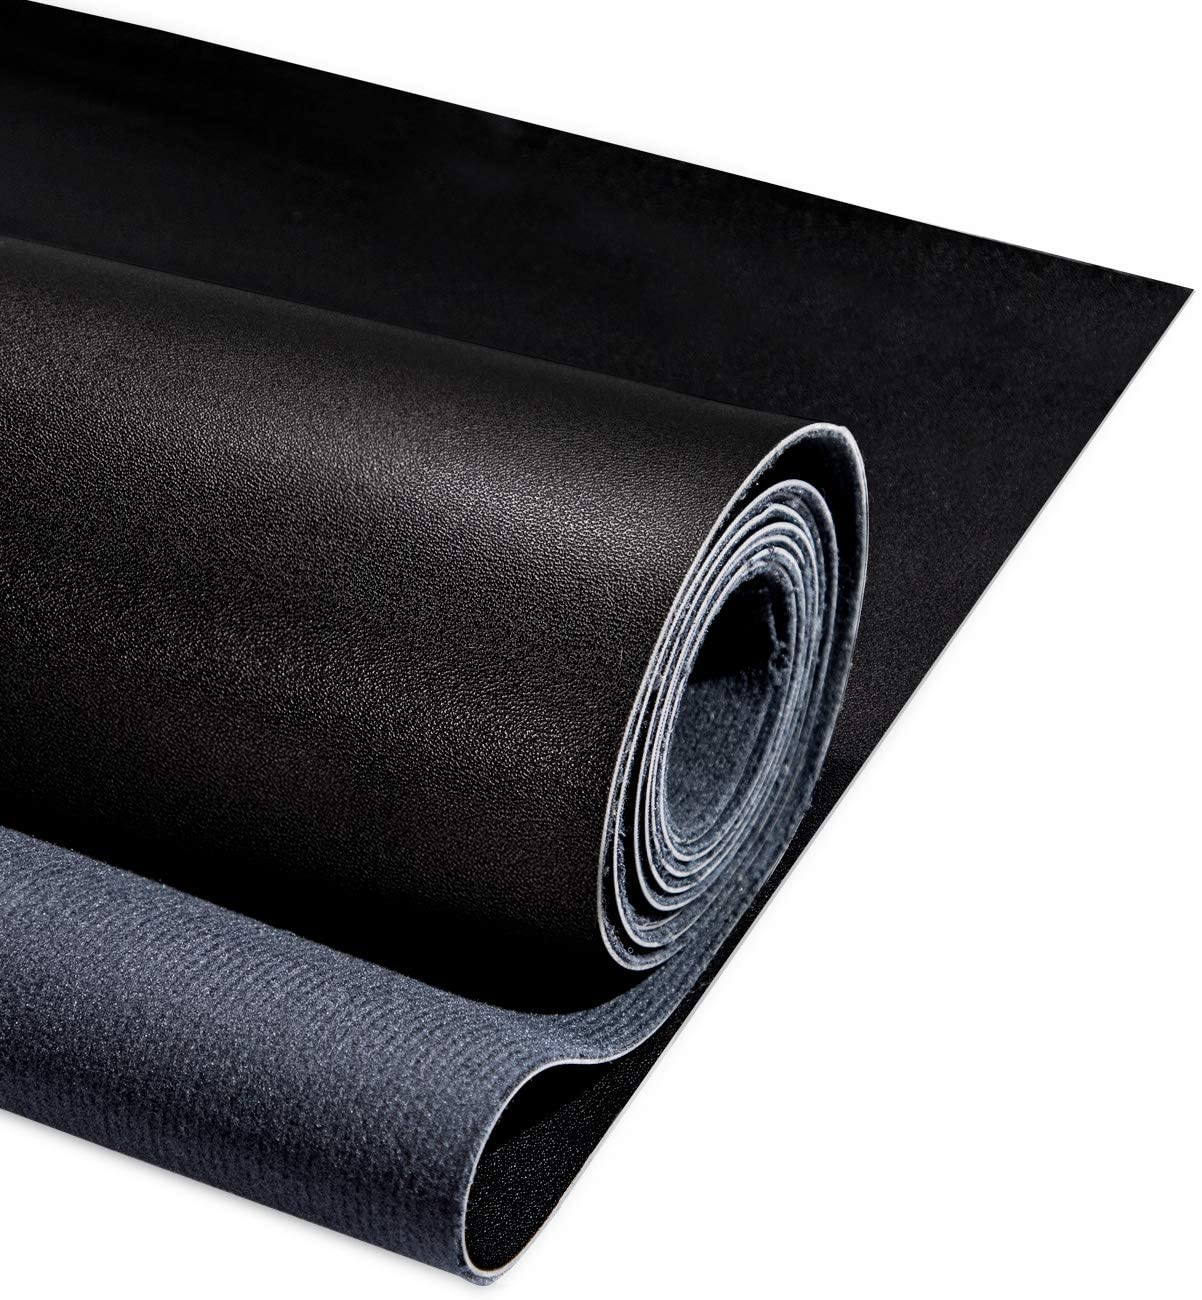 """PU Fabric Leather 2 Yards 54"""" x 72"""", 1.25mm Thick Faux Synthetic Leather Material Sheets for Upholstery Crafts, DIY Sewings, Sofa, Handbag, Hair Bows Decorations, Black"""